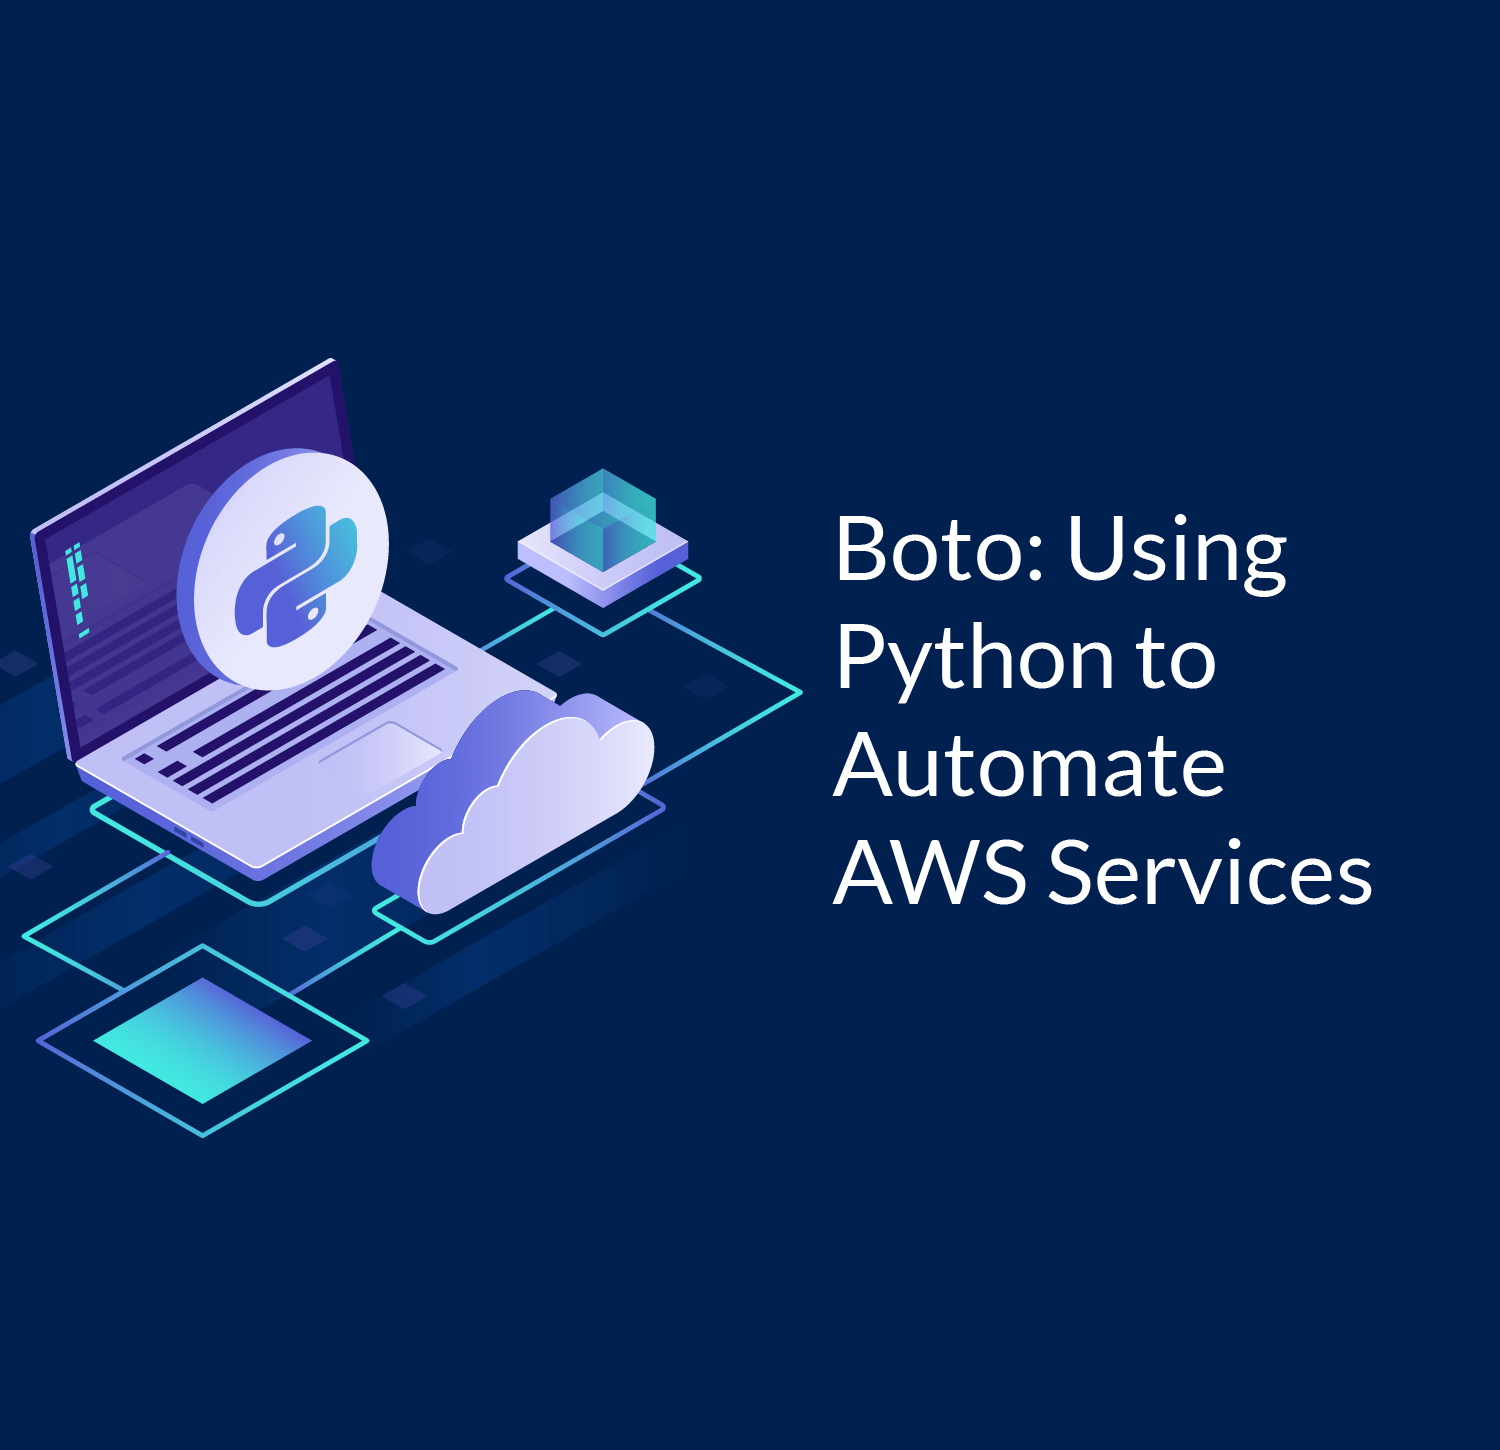 Boto: Using Python to Automate AWS services